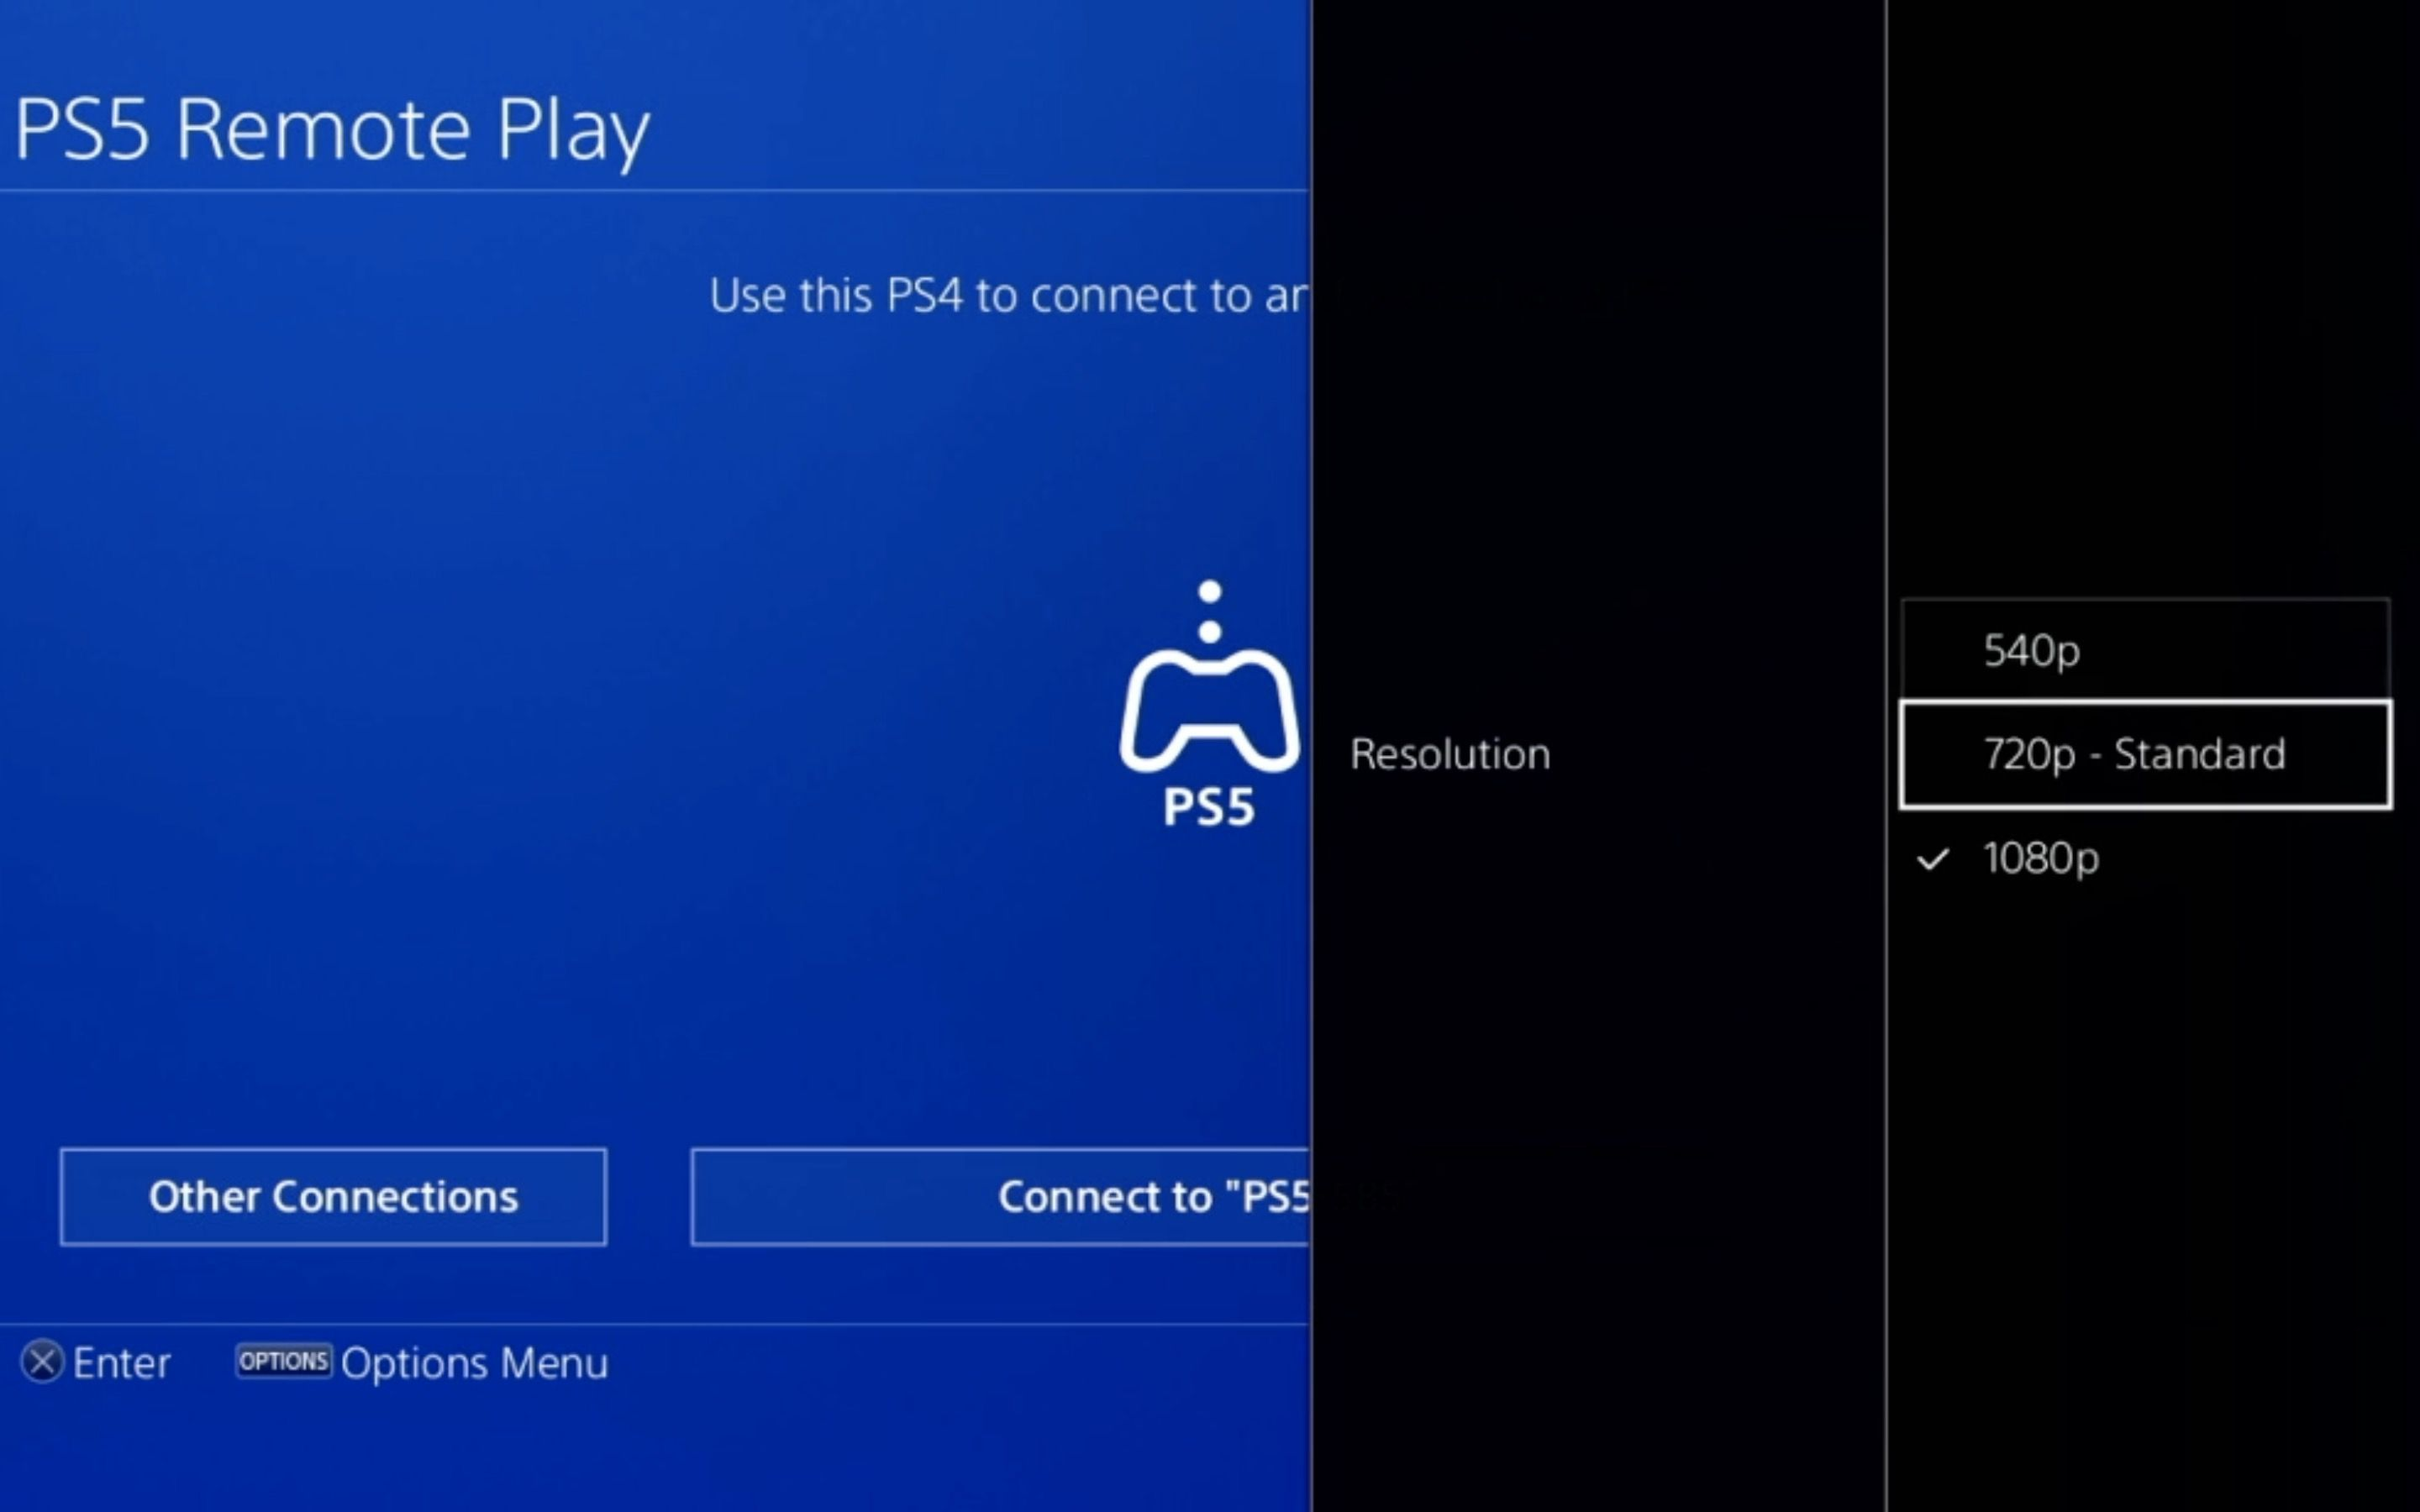 Resolution options for PS5 Remote Play